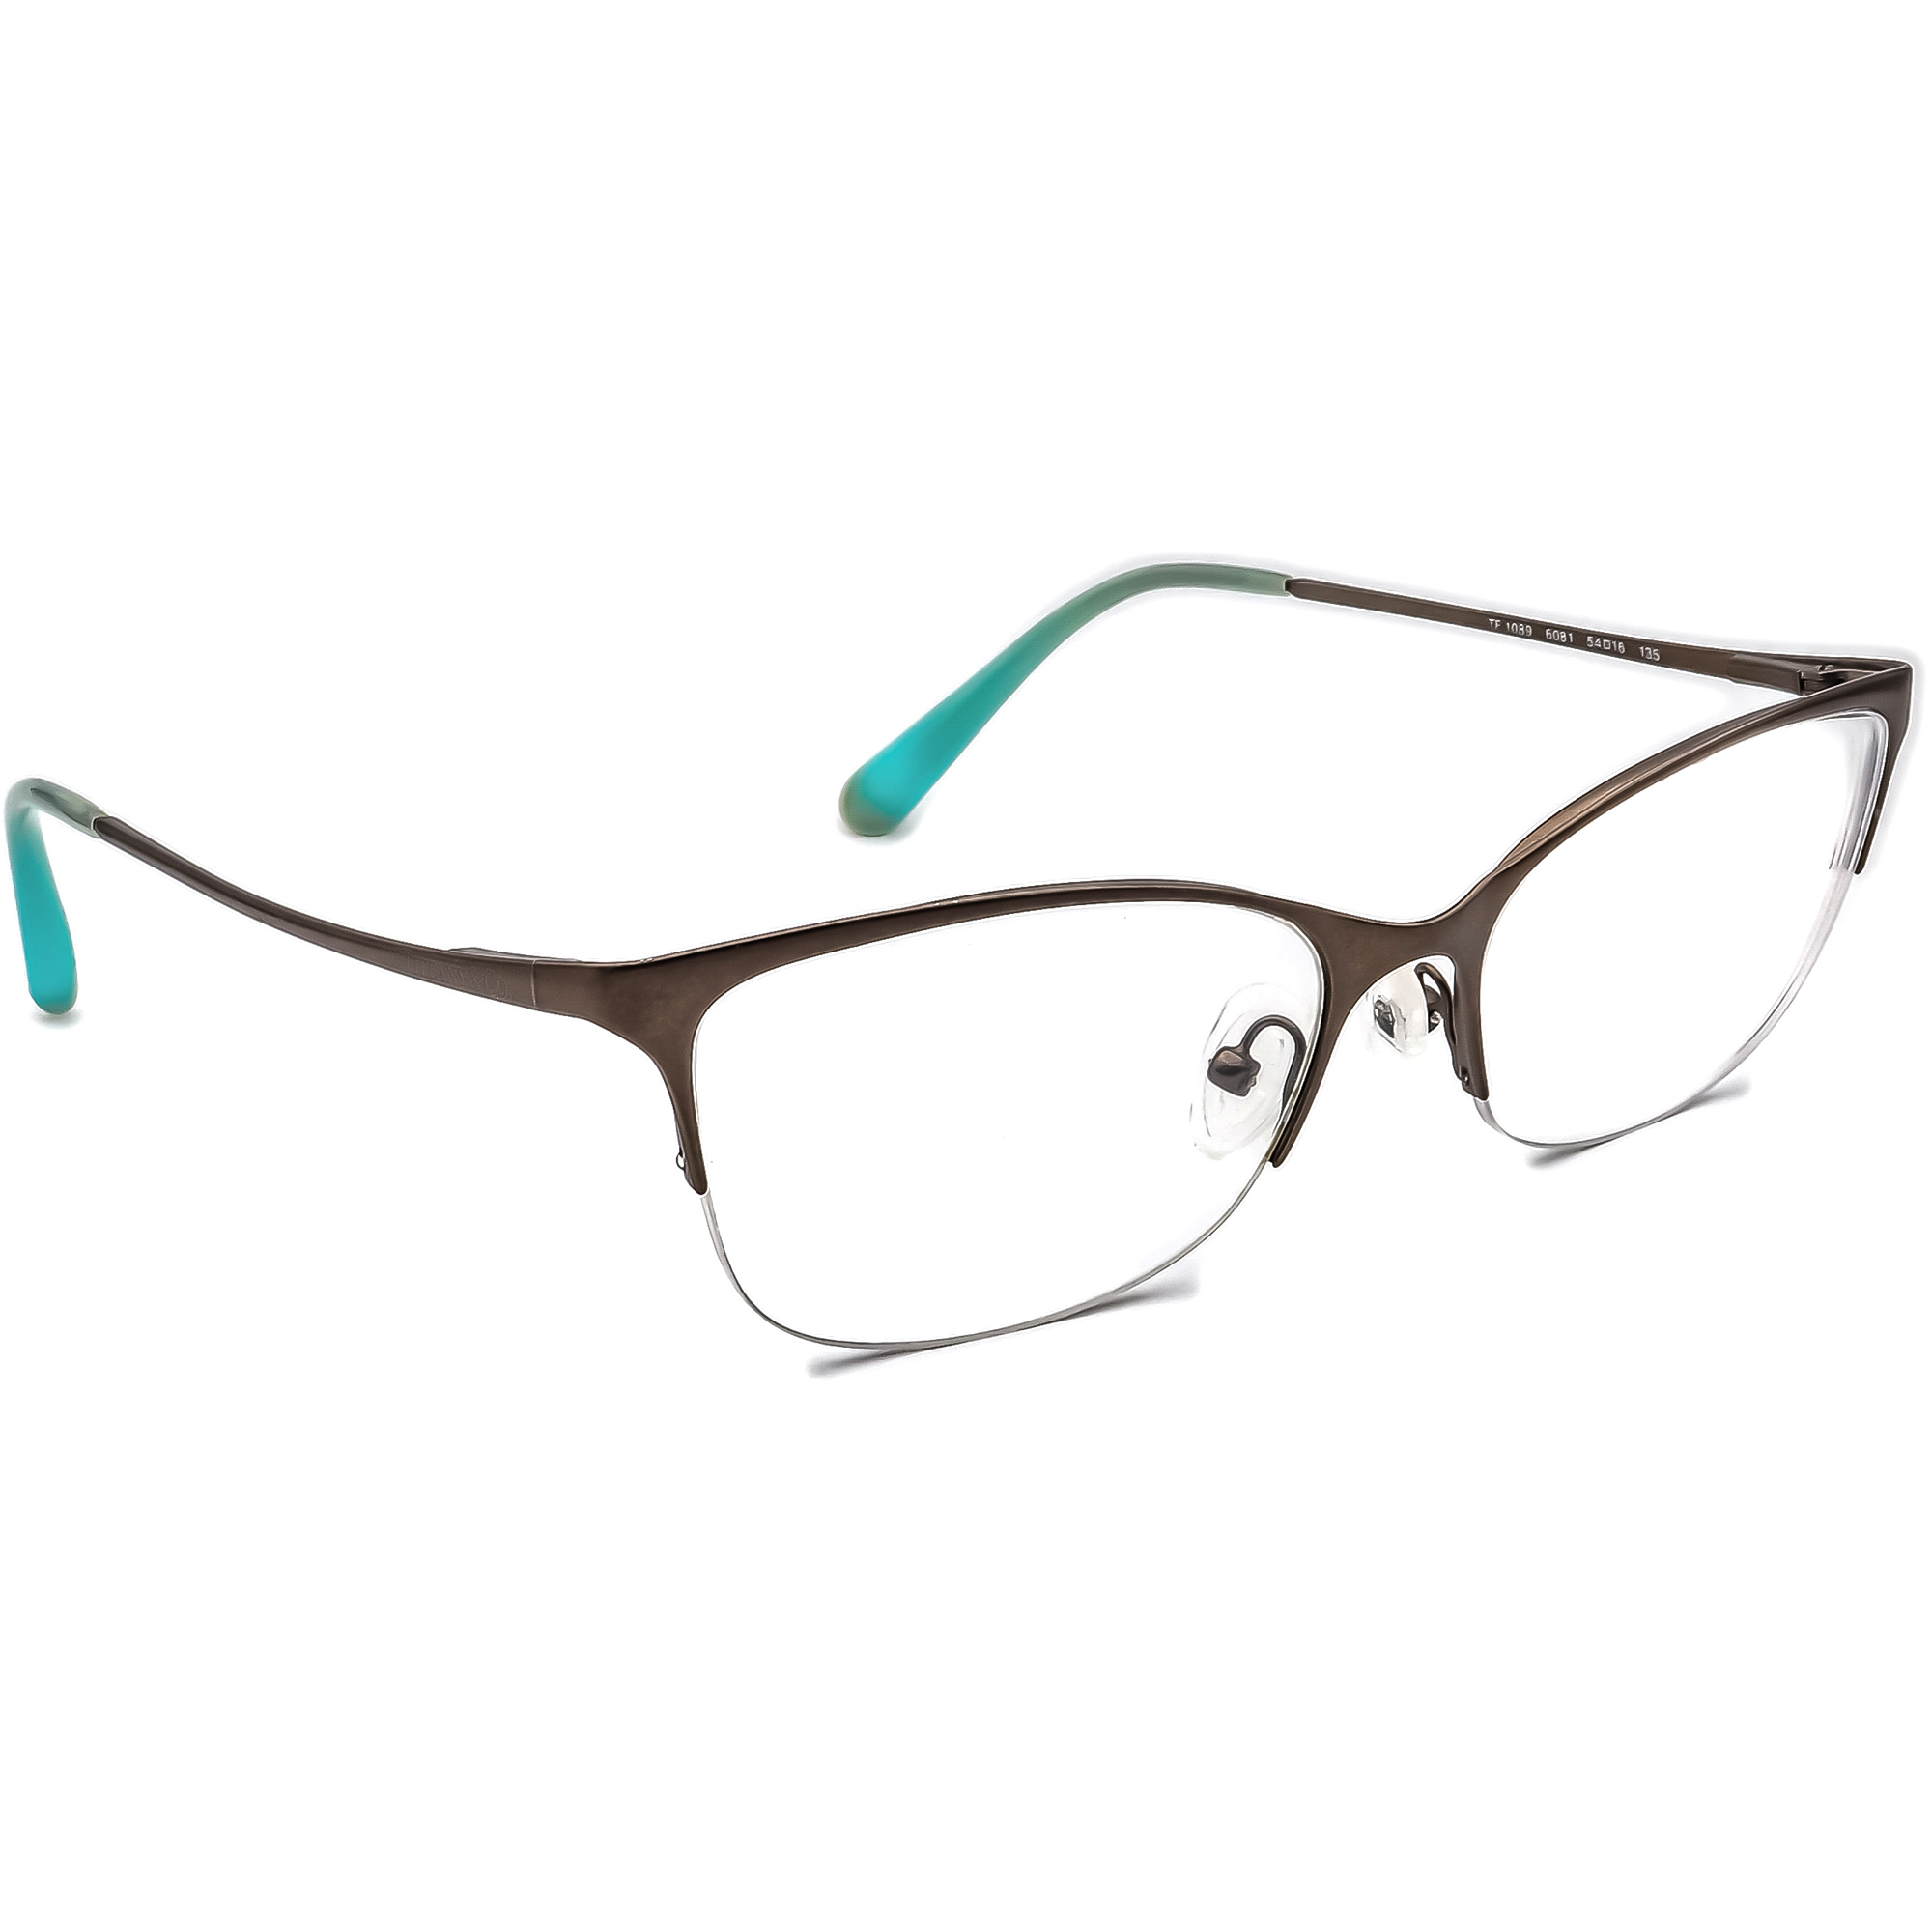 Tiffany & Co. TF 1089 6081 Eyeglasses